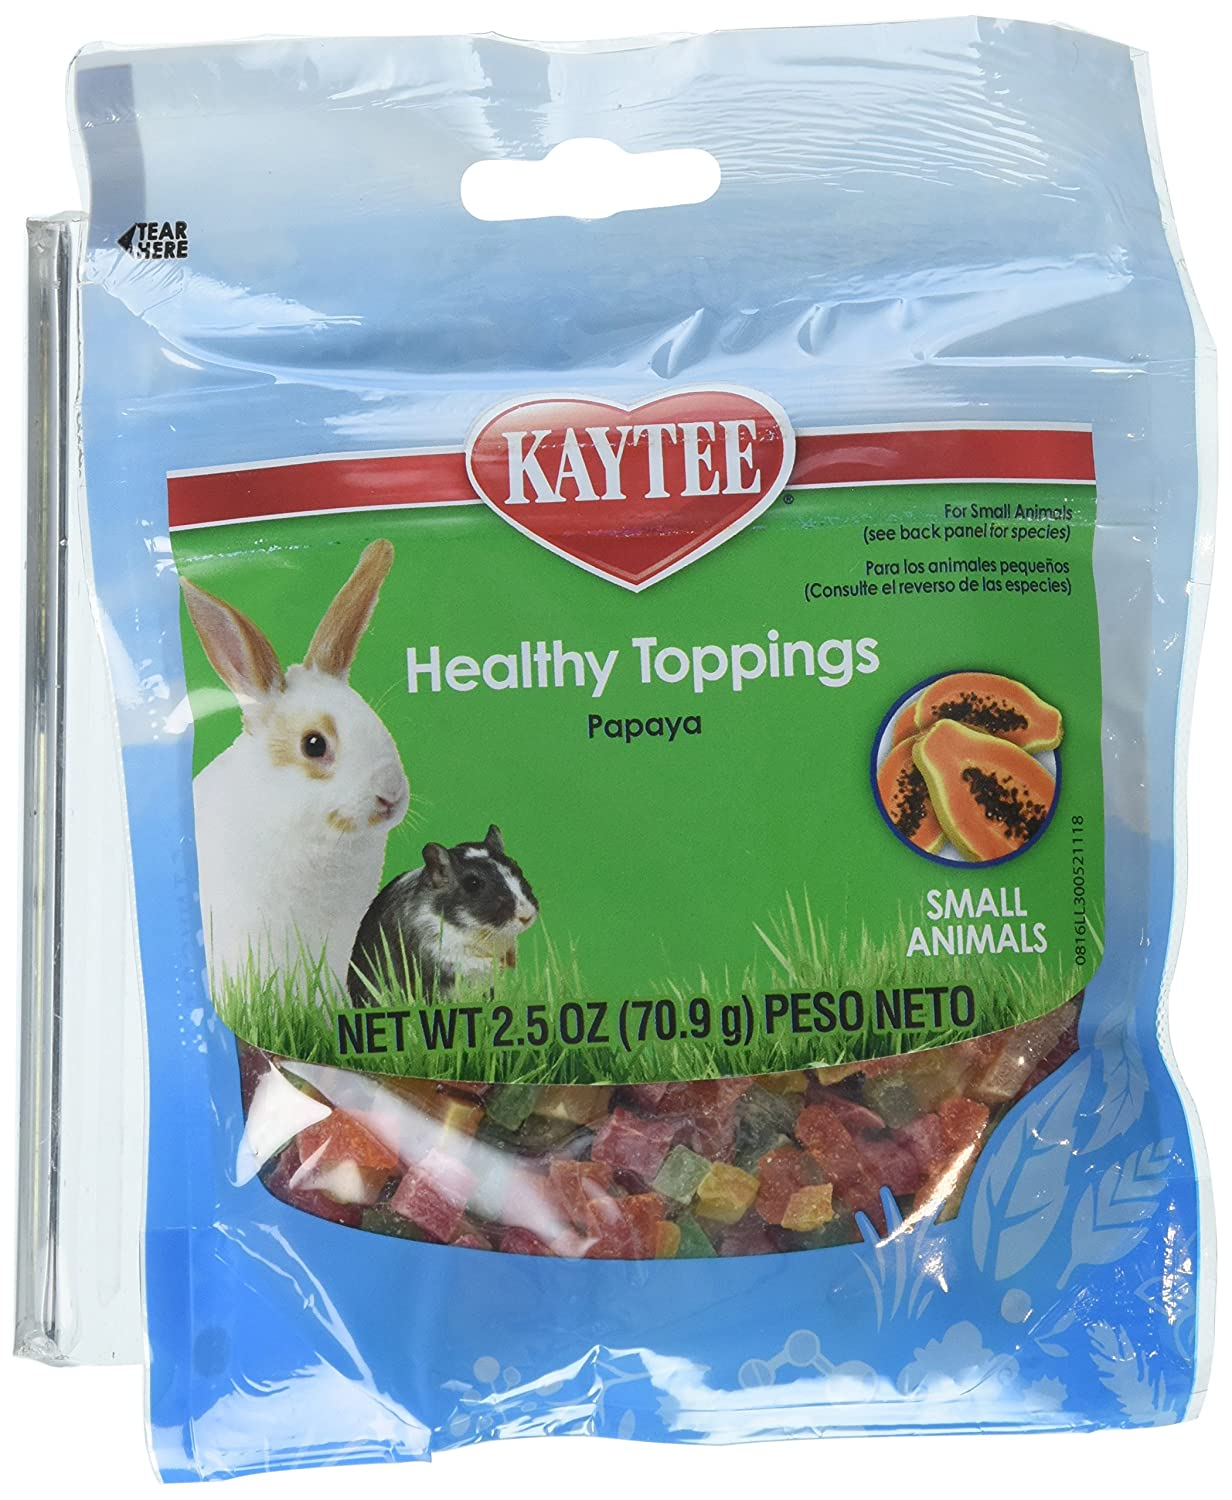 Kaytee Fiesta Healthy Toppings Papaya Treat for Small Animals, 2.5-oz bag 100503009